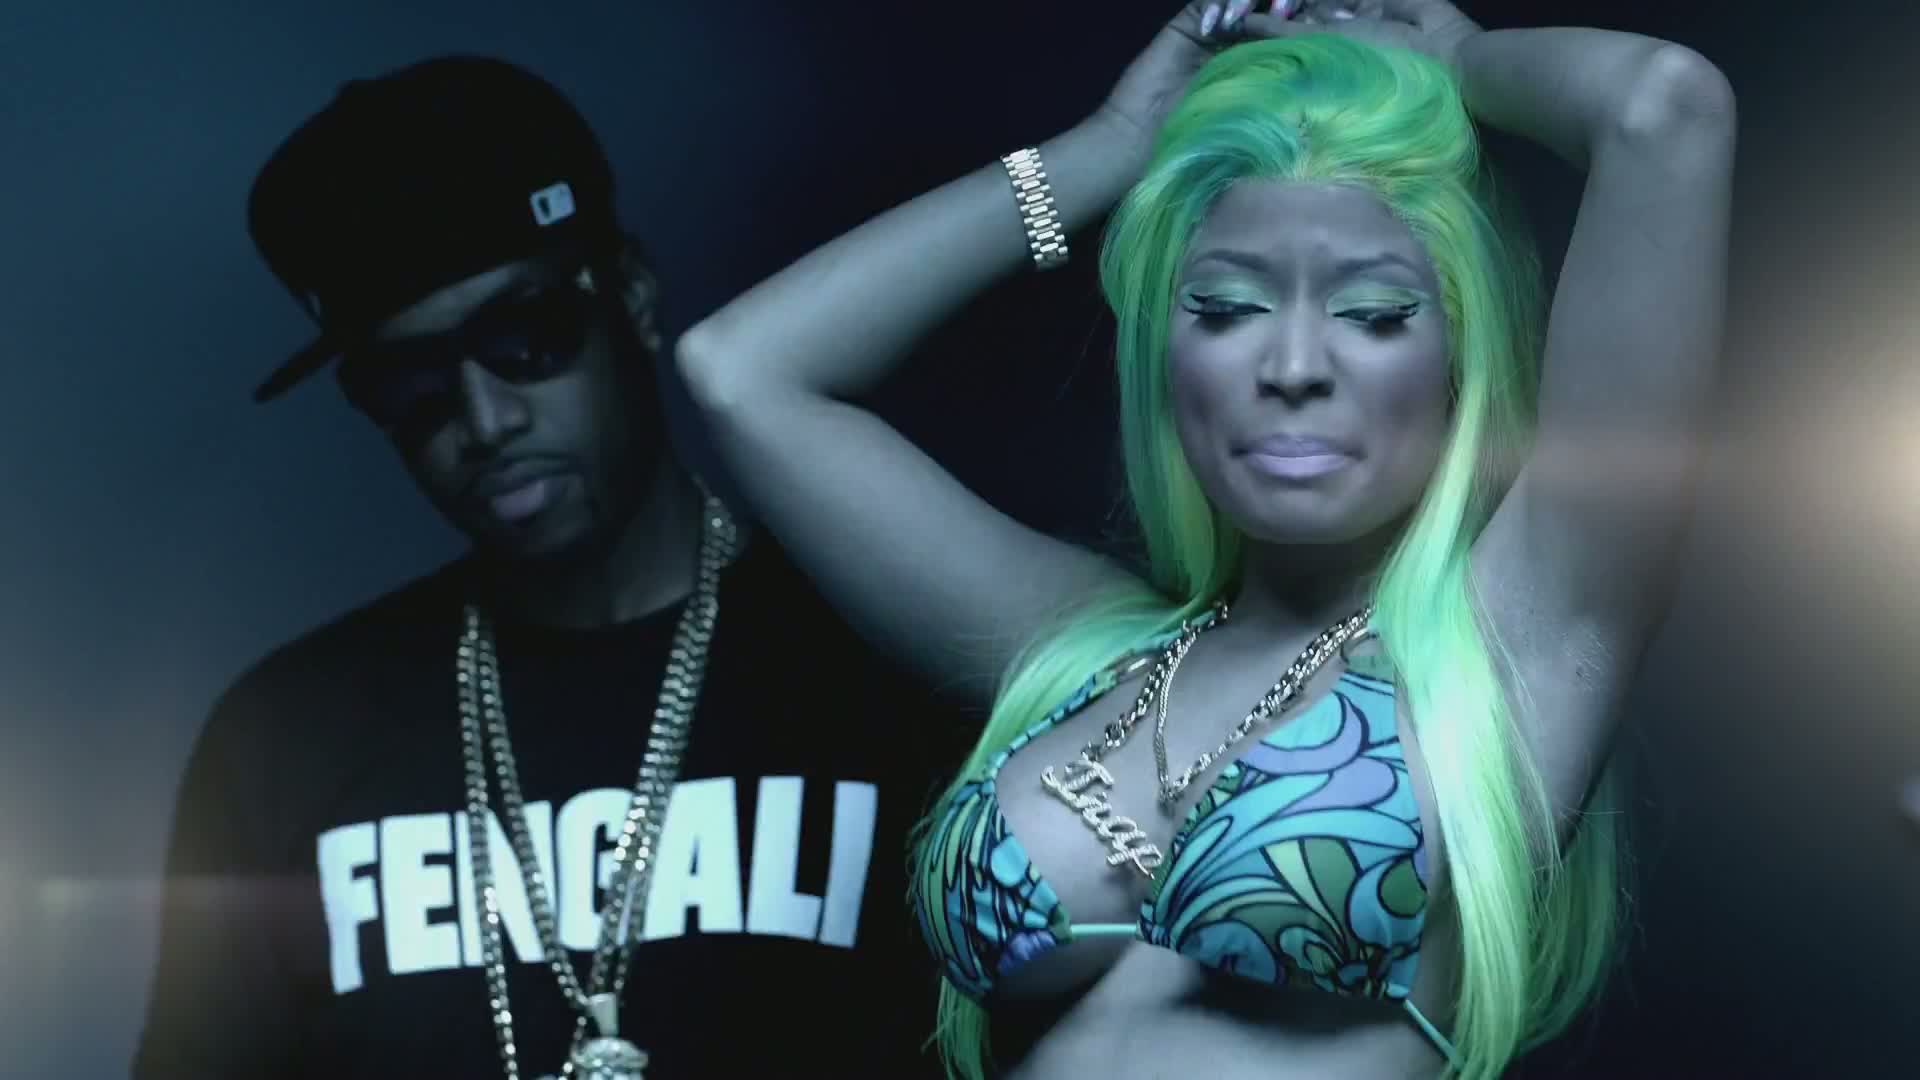 Nicki Minaj Ft. 2 Chainz - Beez In The Trap